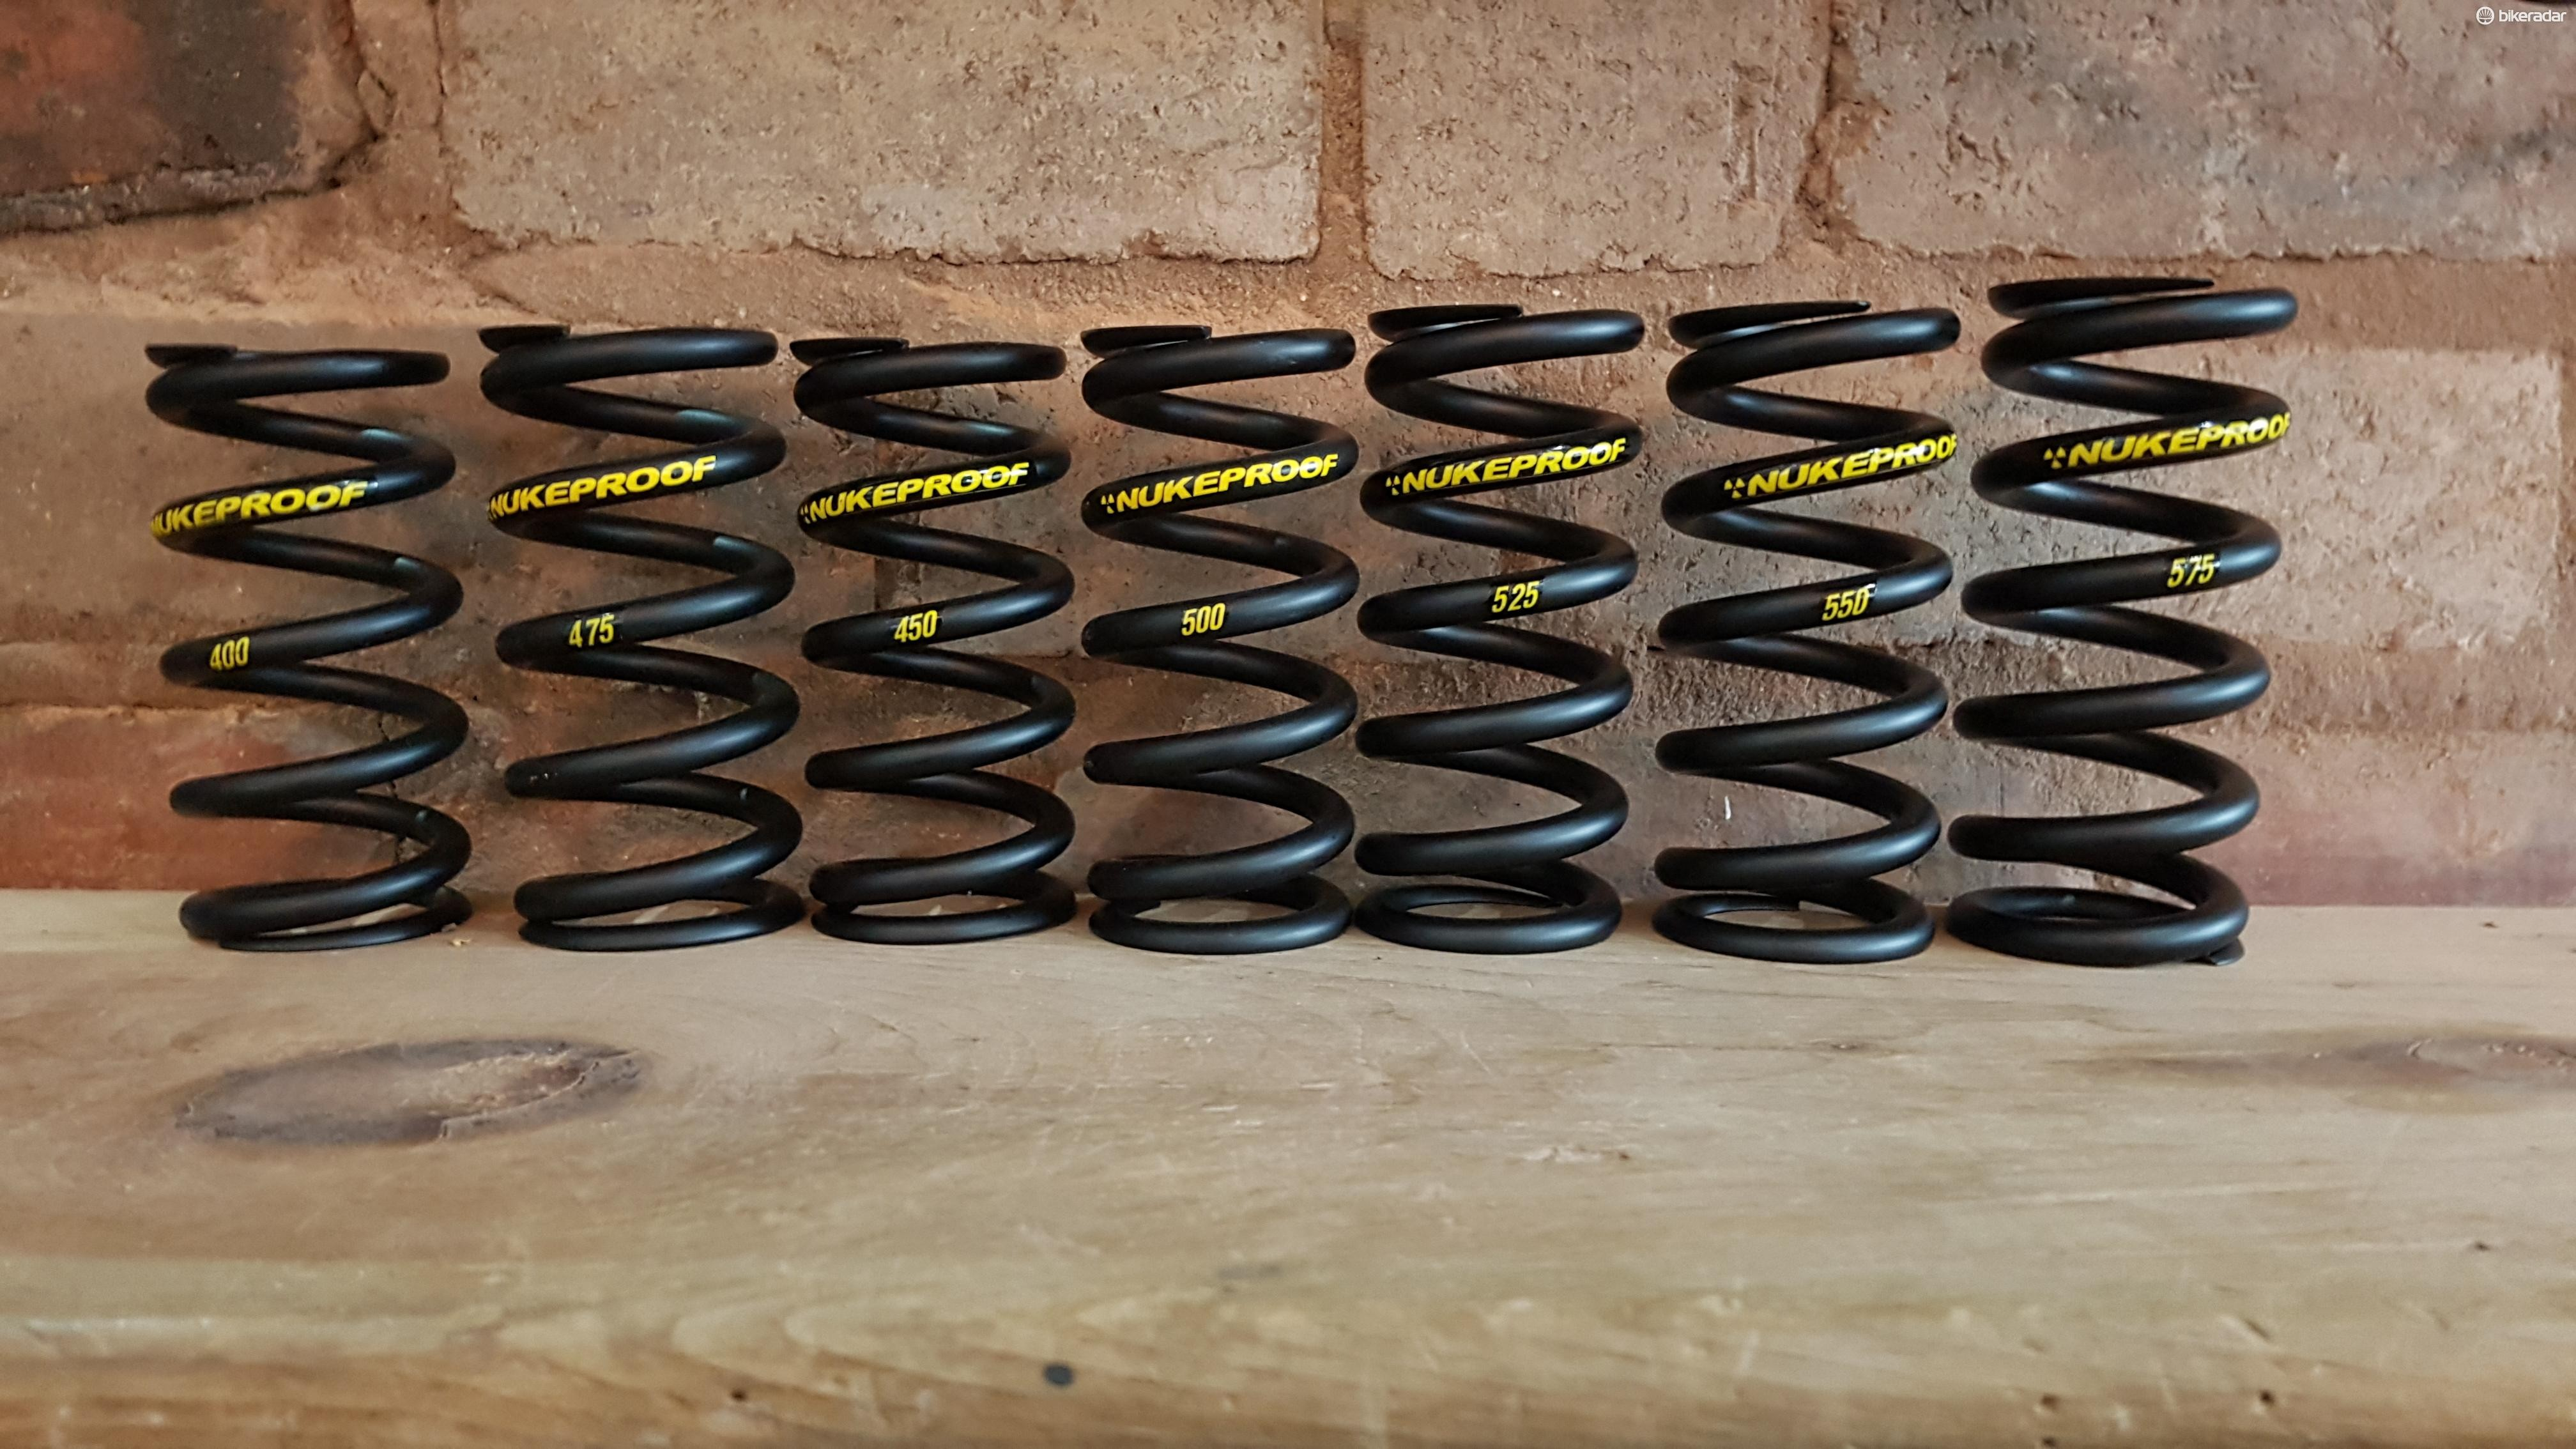 Nukeproof also offers a range of lighter replacement springs for most common coil shocks